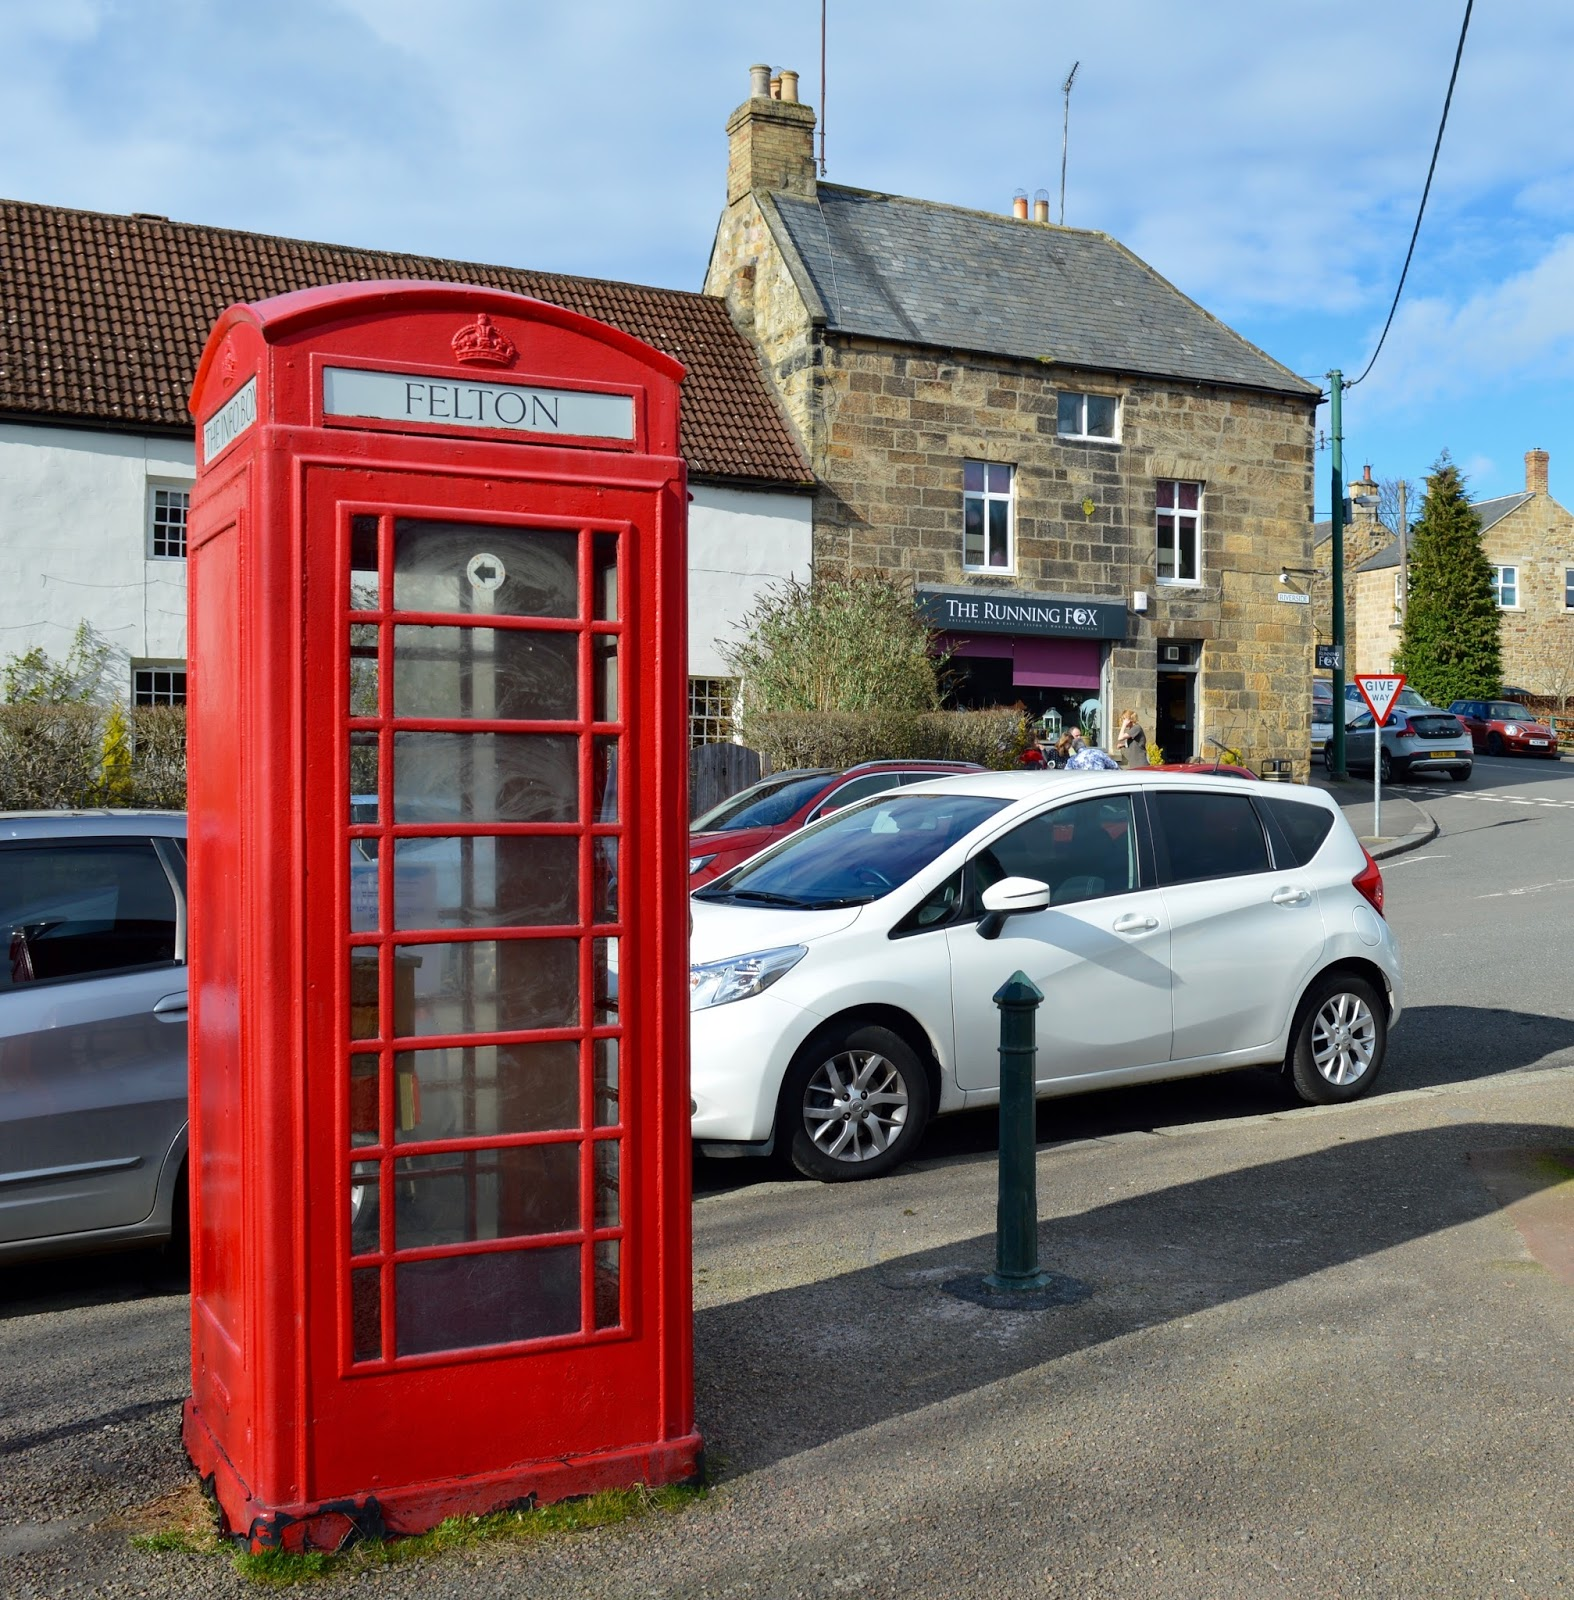 The Northumberland Arms, Felton | Red phone box and the running fox bakery exterior